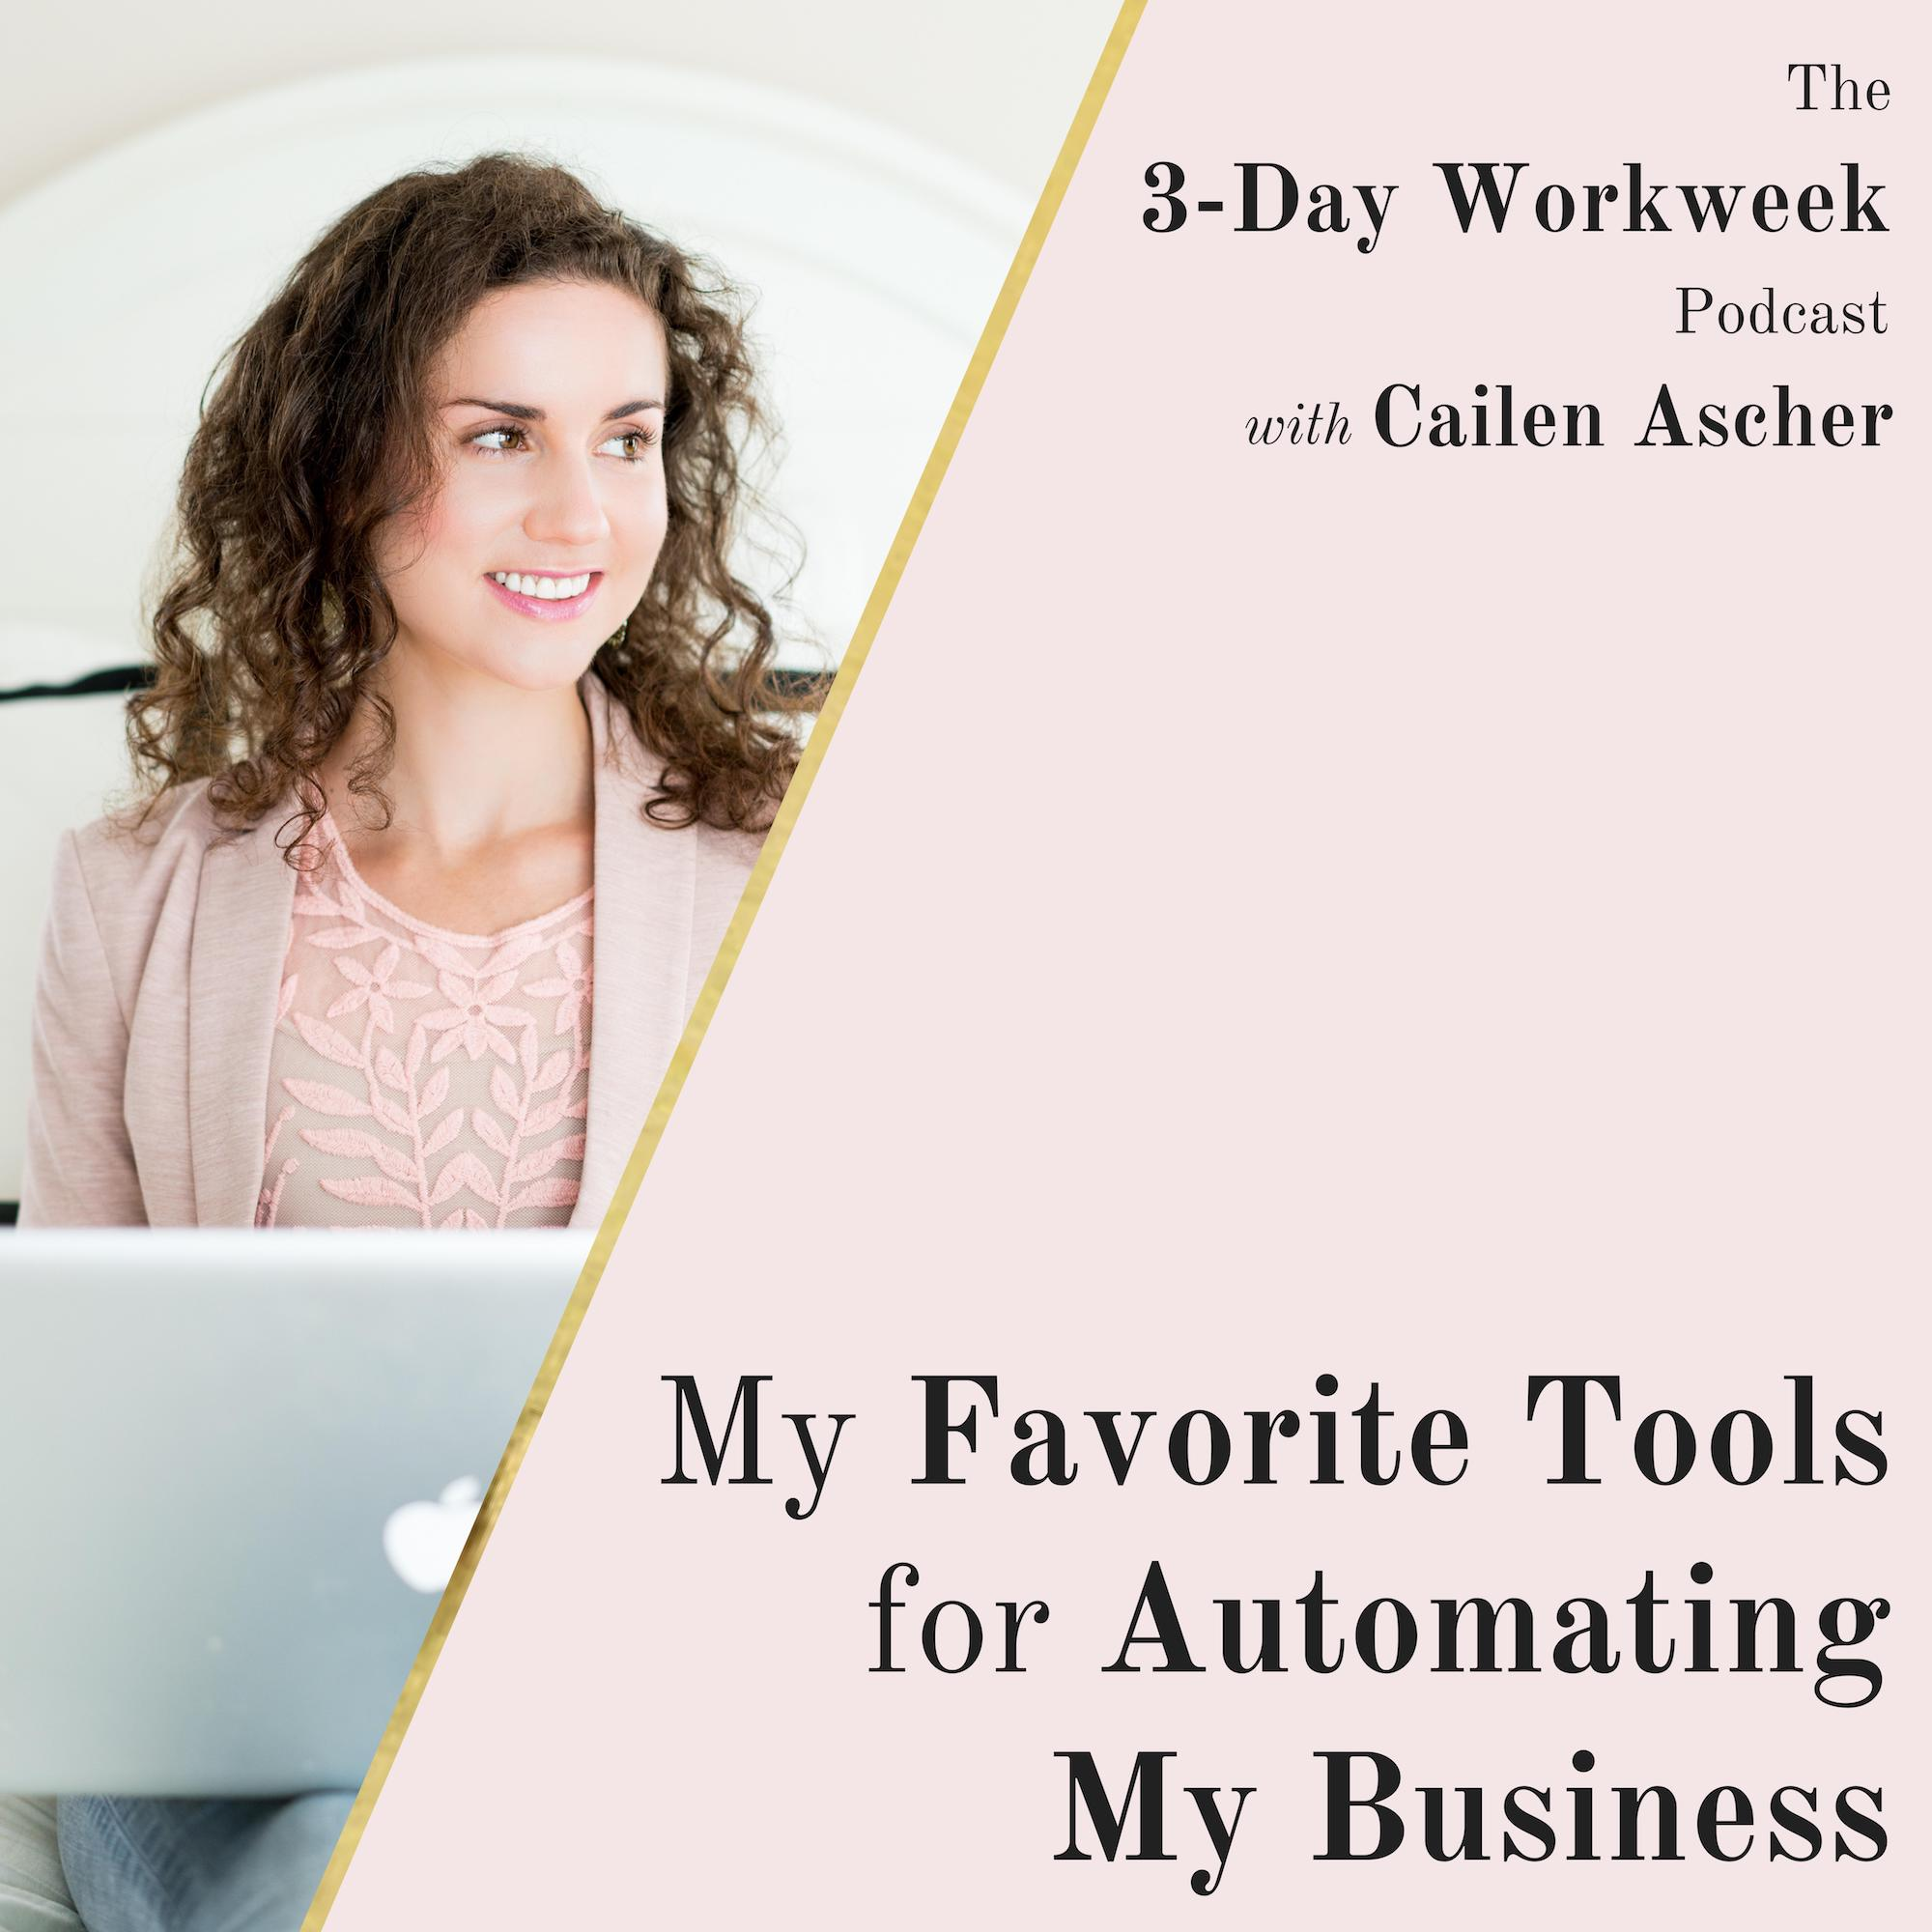 The 3-Day Workweek Podcast with Cailen Ascher - 2019-08-07- My Favorite Tools for Automating My Business - SQUARE.jpg